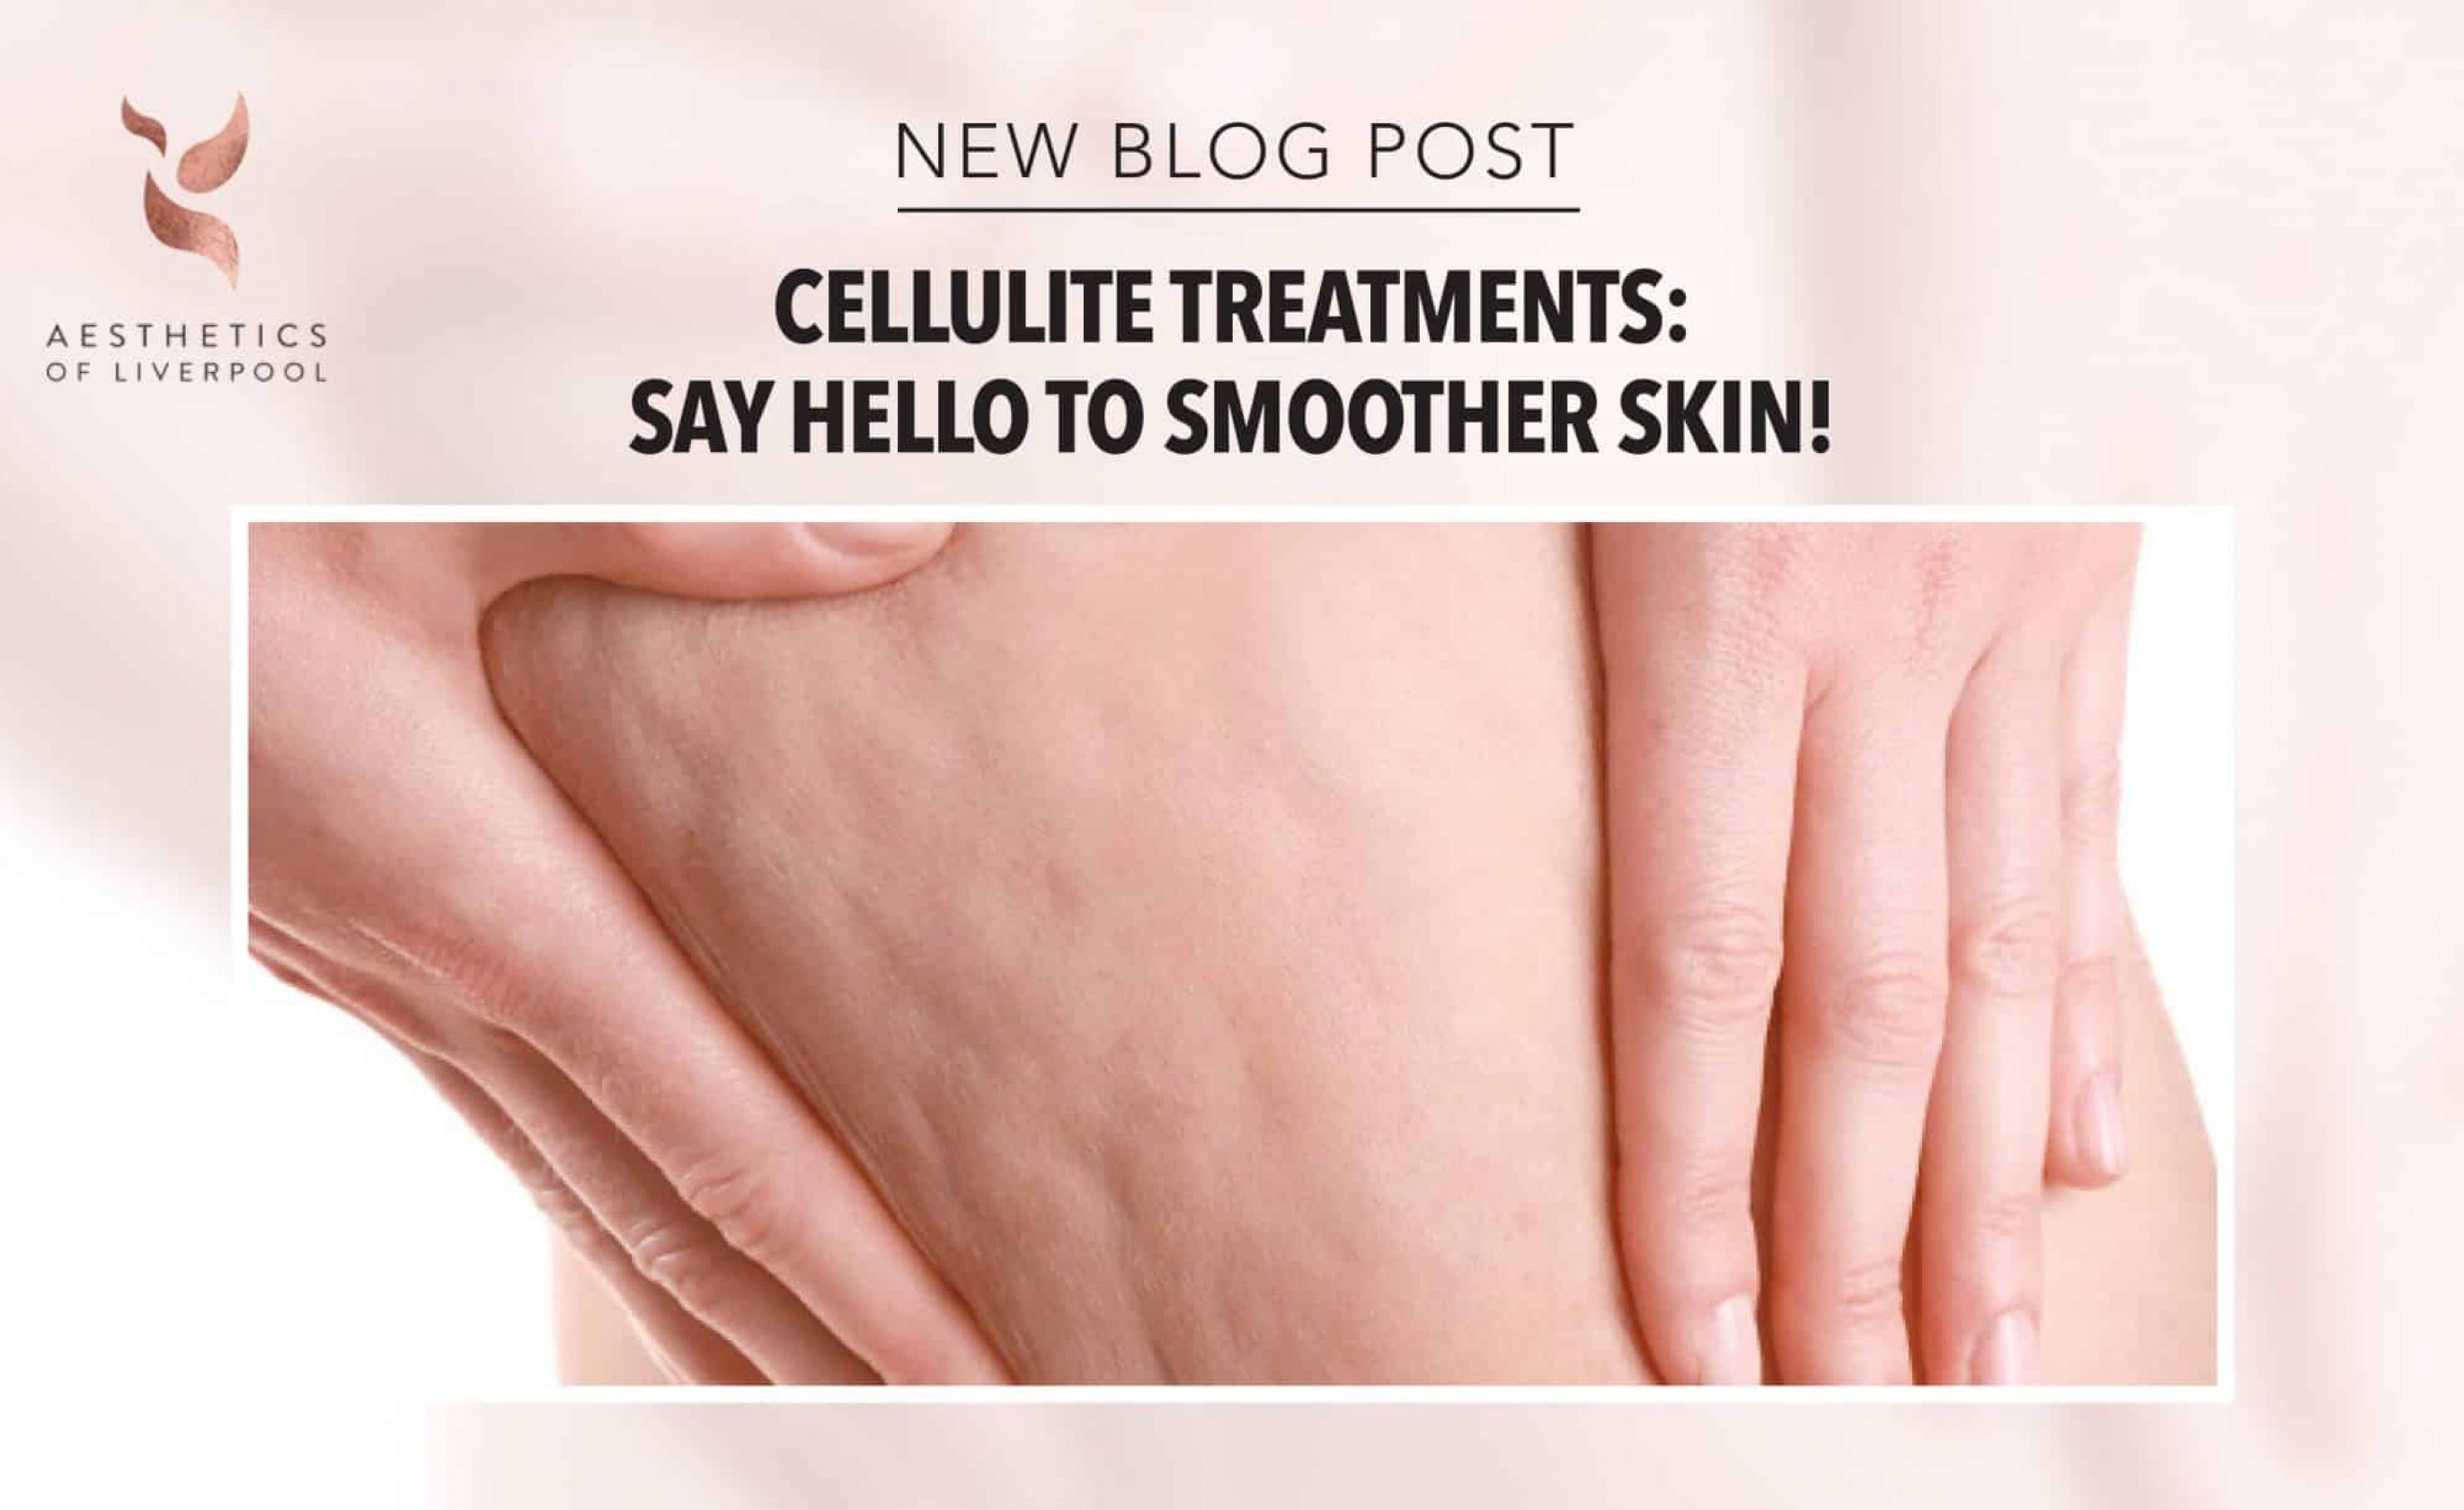 Cellulite Treatments: Say Hello To Smoother Skin!